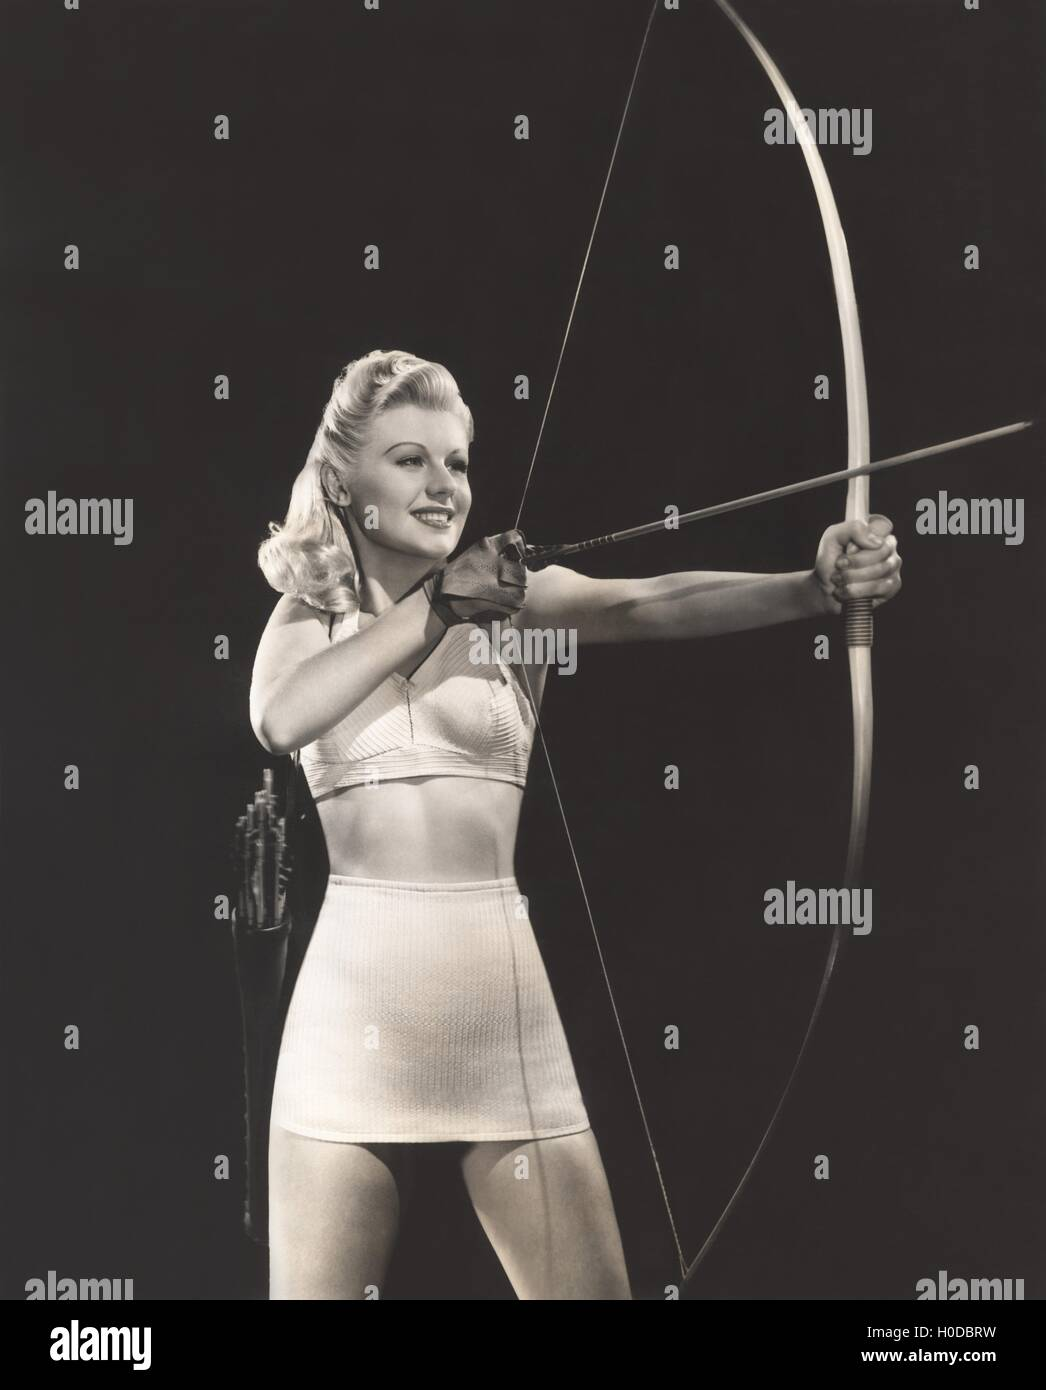 Woman in crop top and mini skirt shooting bow and arrow - Stock Image